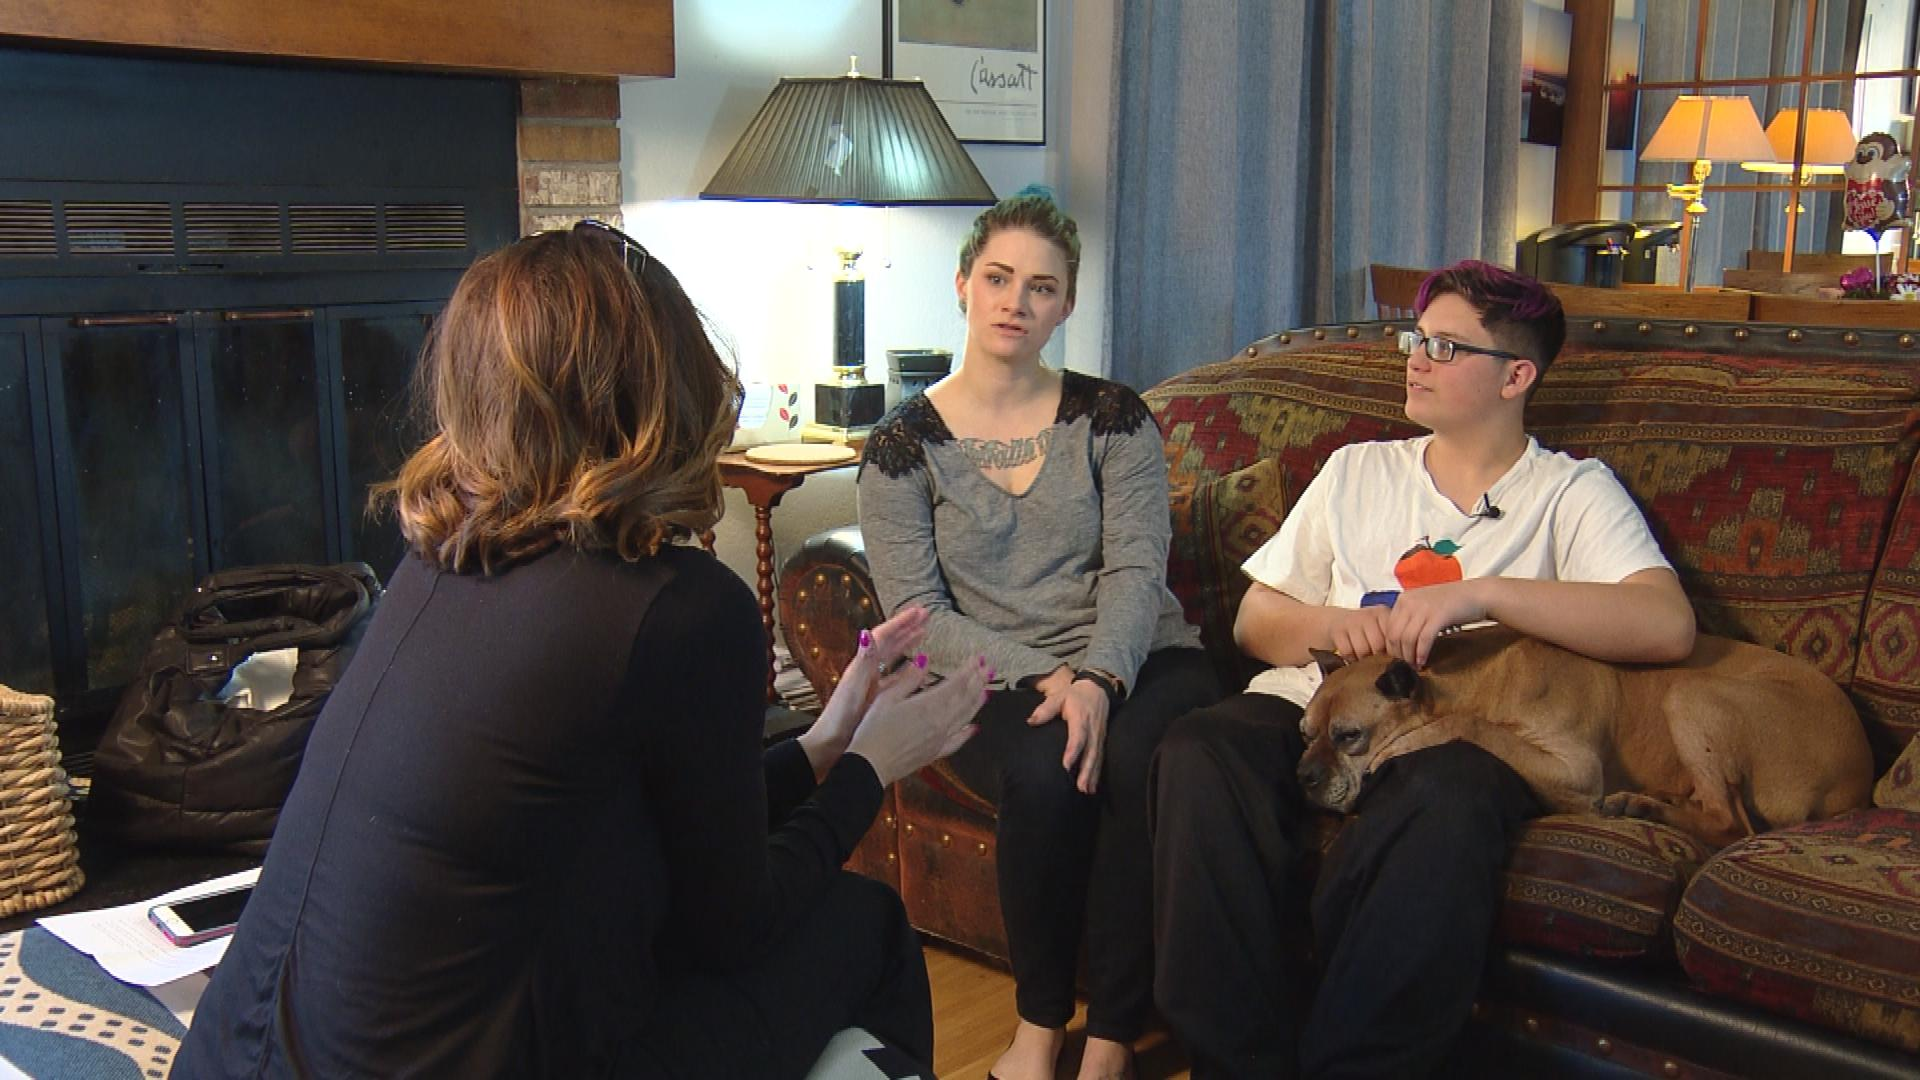 CBS4's Jennifer Brice interviews Janell and Aiden Feeley (credit: CBS)